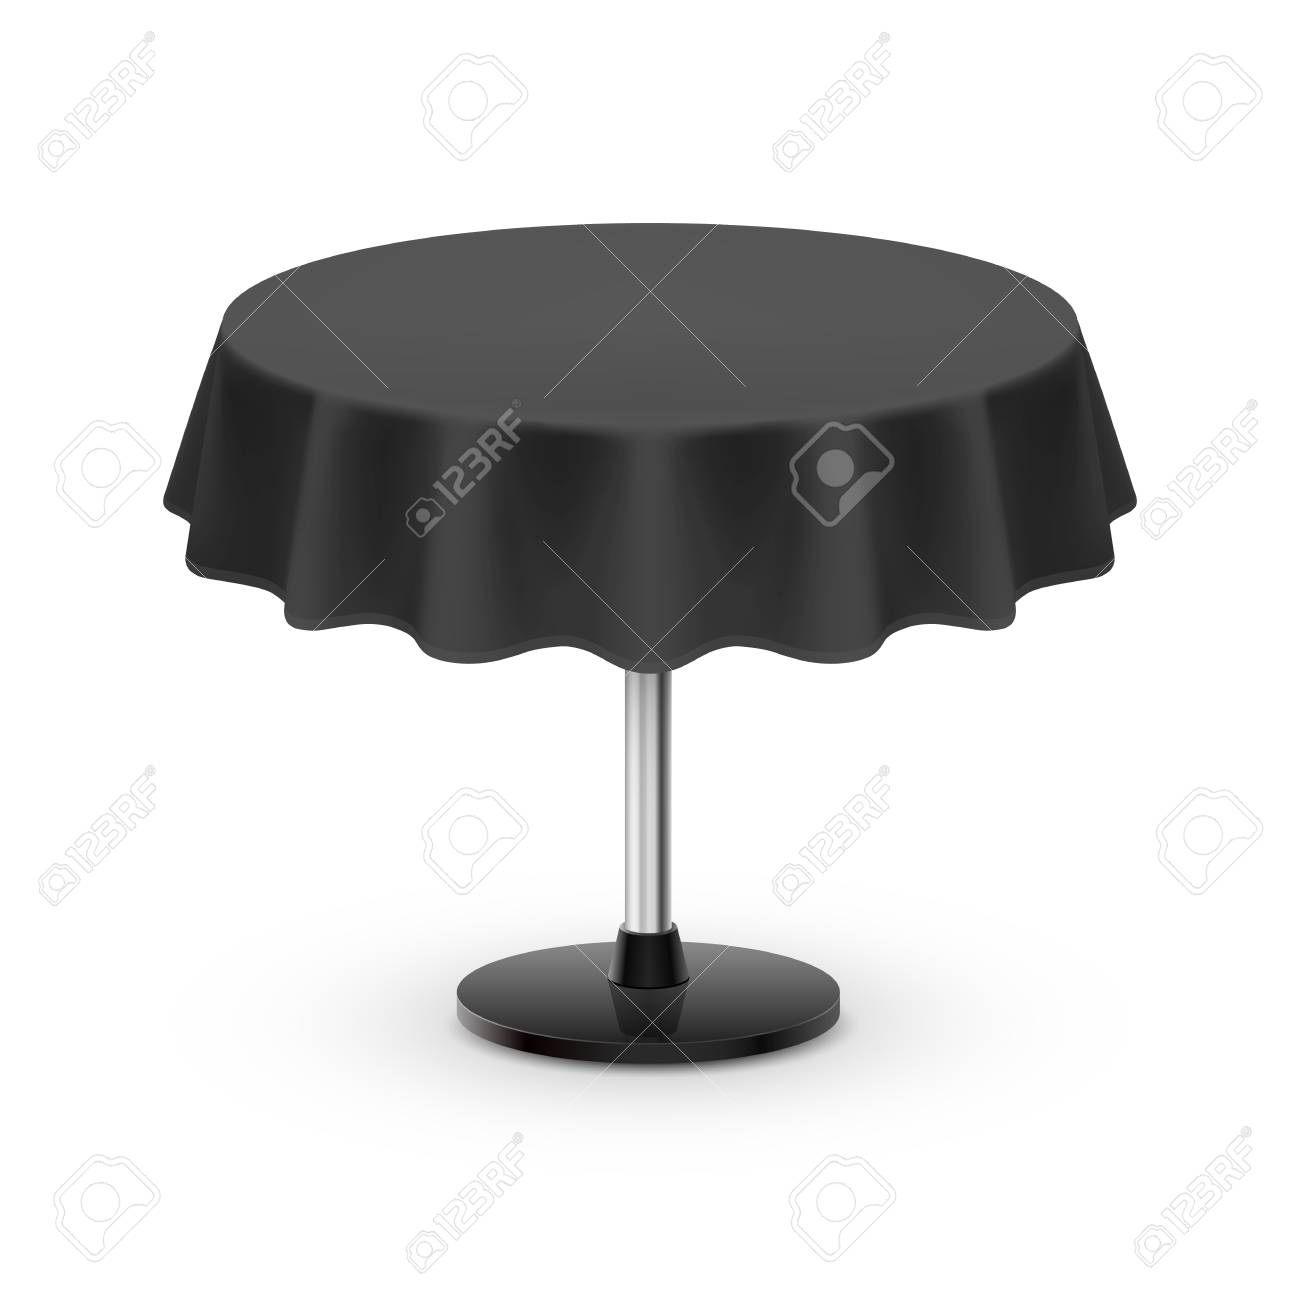 Round Table With Tablecloth.Isolated Blank Round Table With Tablecloth In Black Color On